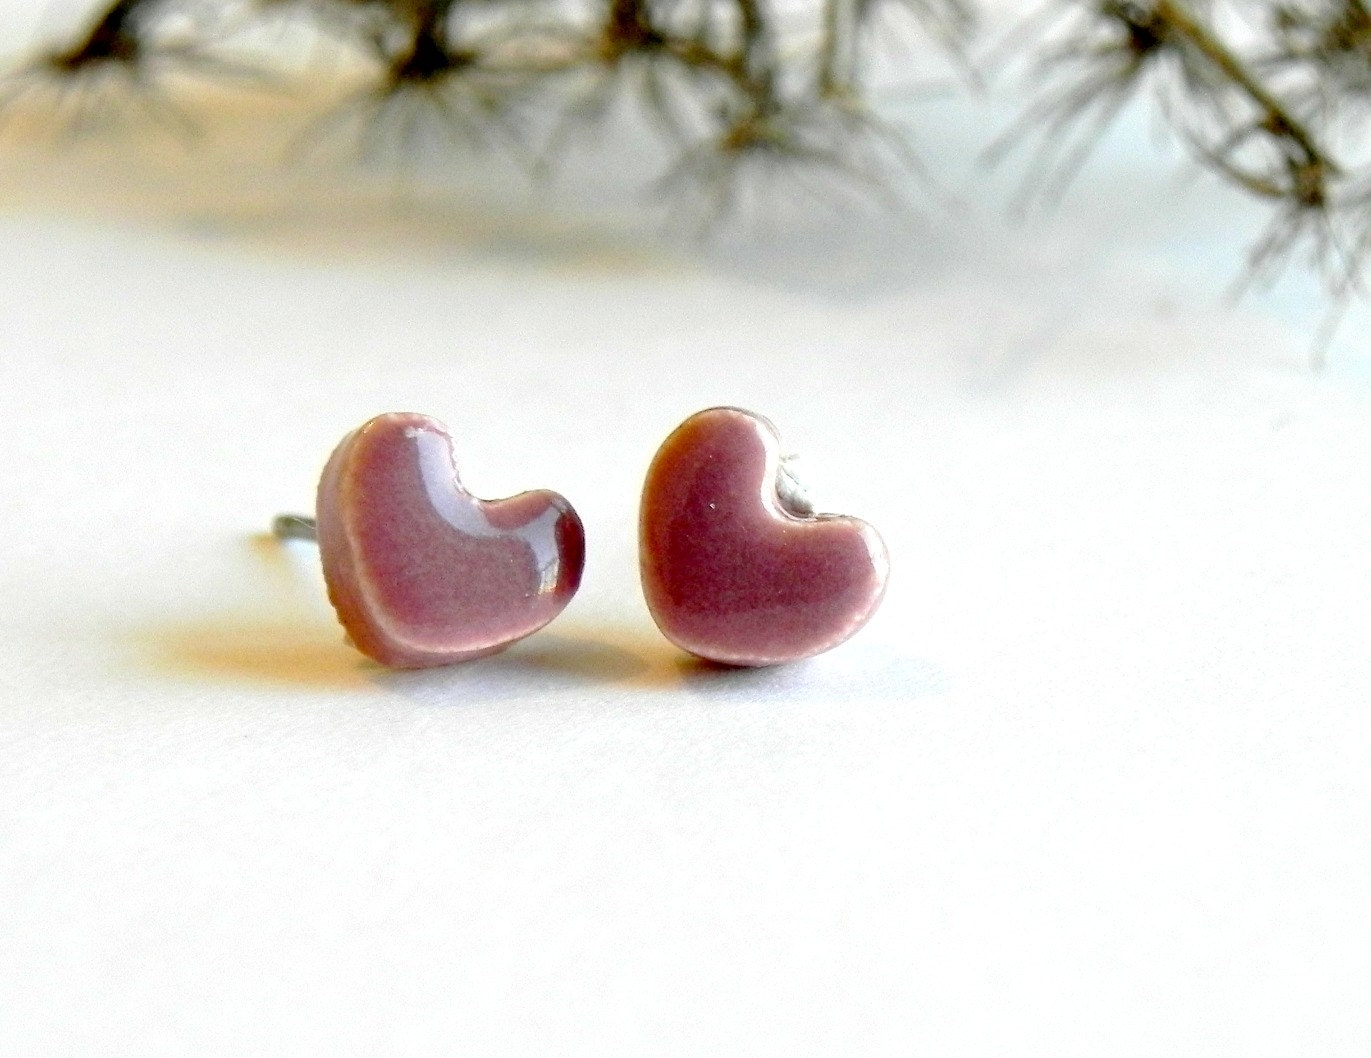 Ceramic Tiny Heart Post Earrings Mauve Pink Hypoallergenic Studs - LemoneRouge